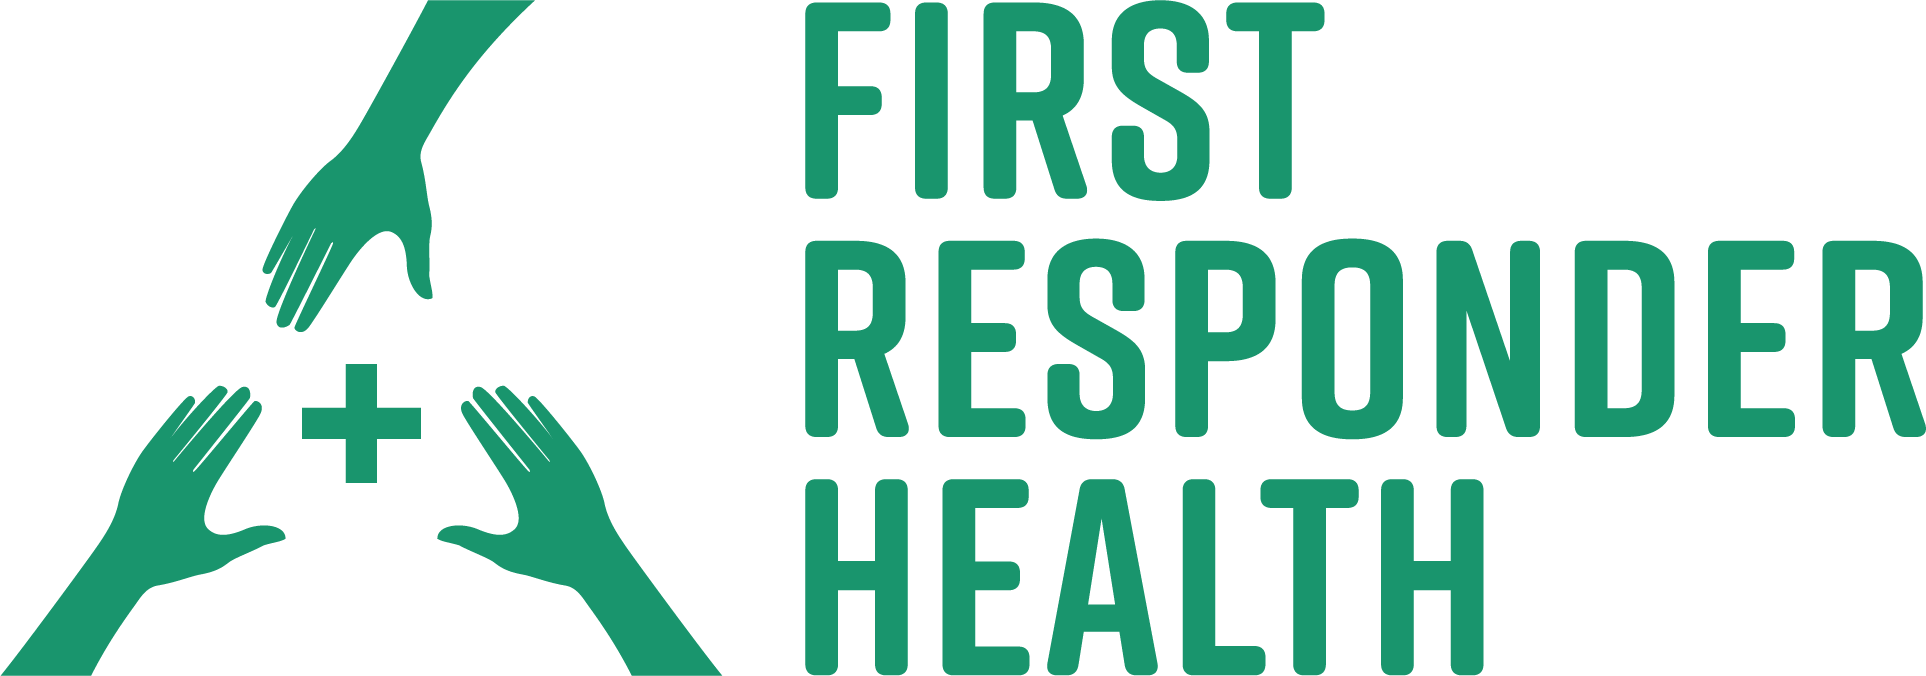 First Responder Health-Secondary-Green.png